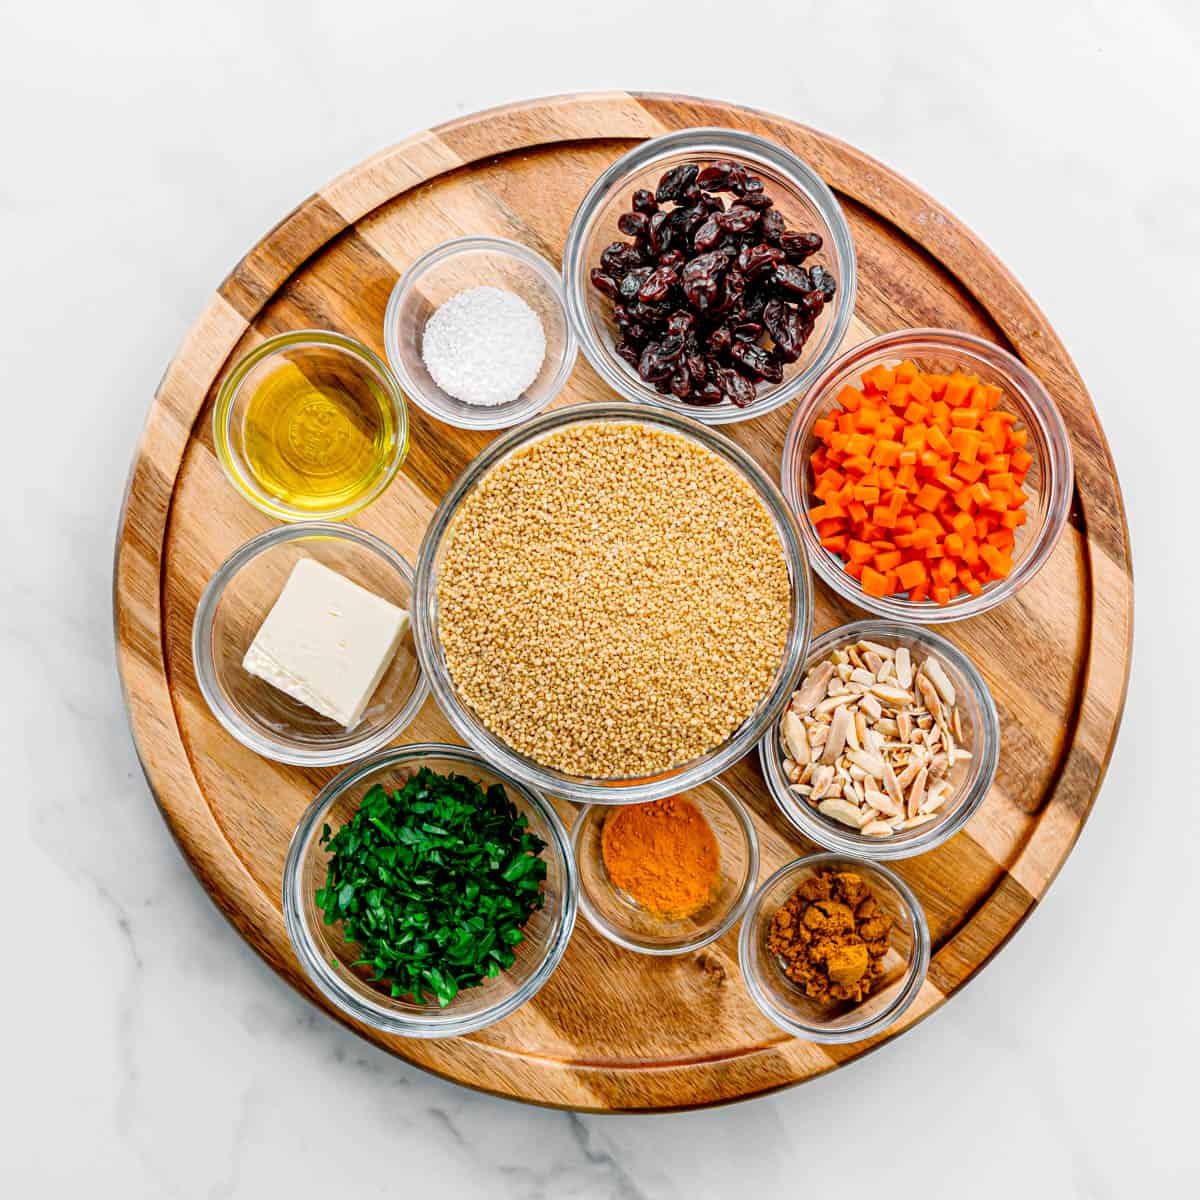 Ingredients You'll Need to Make Curry Couscous